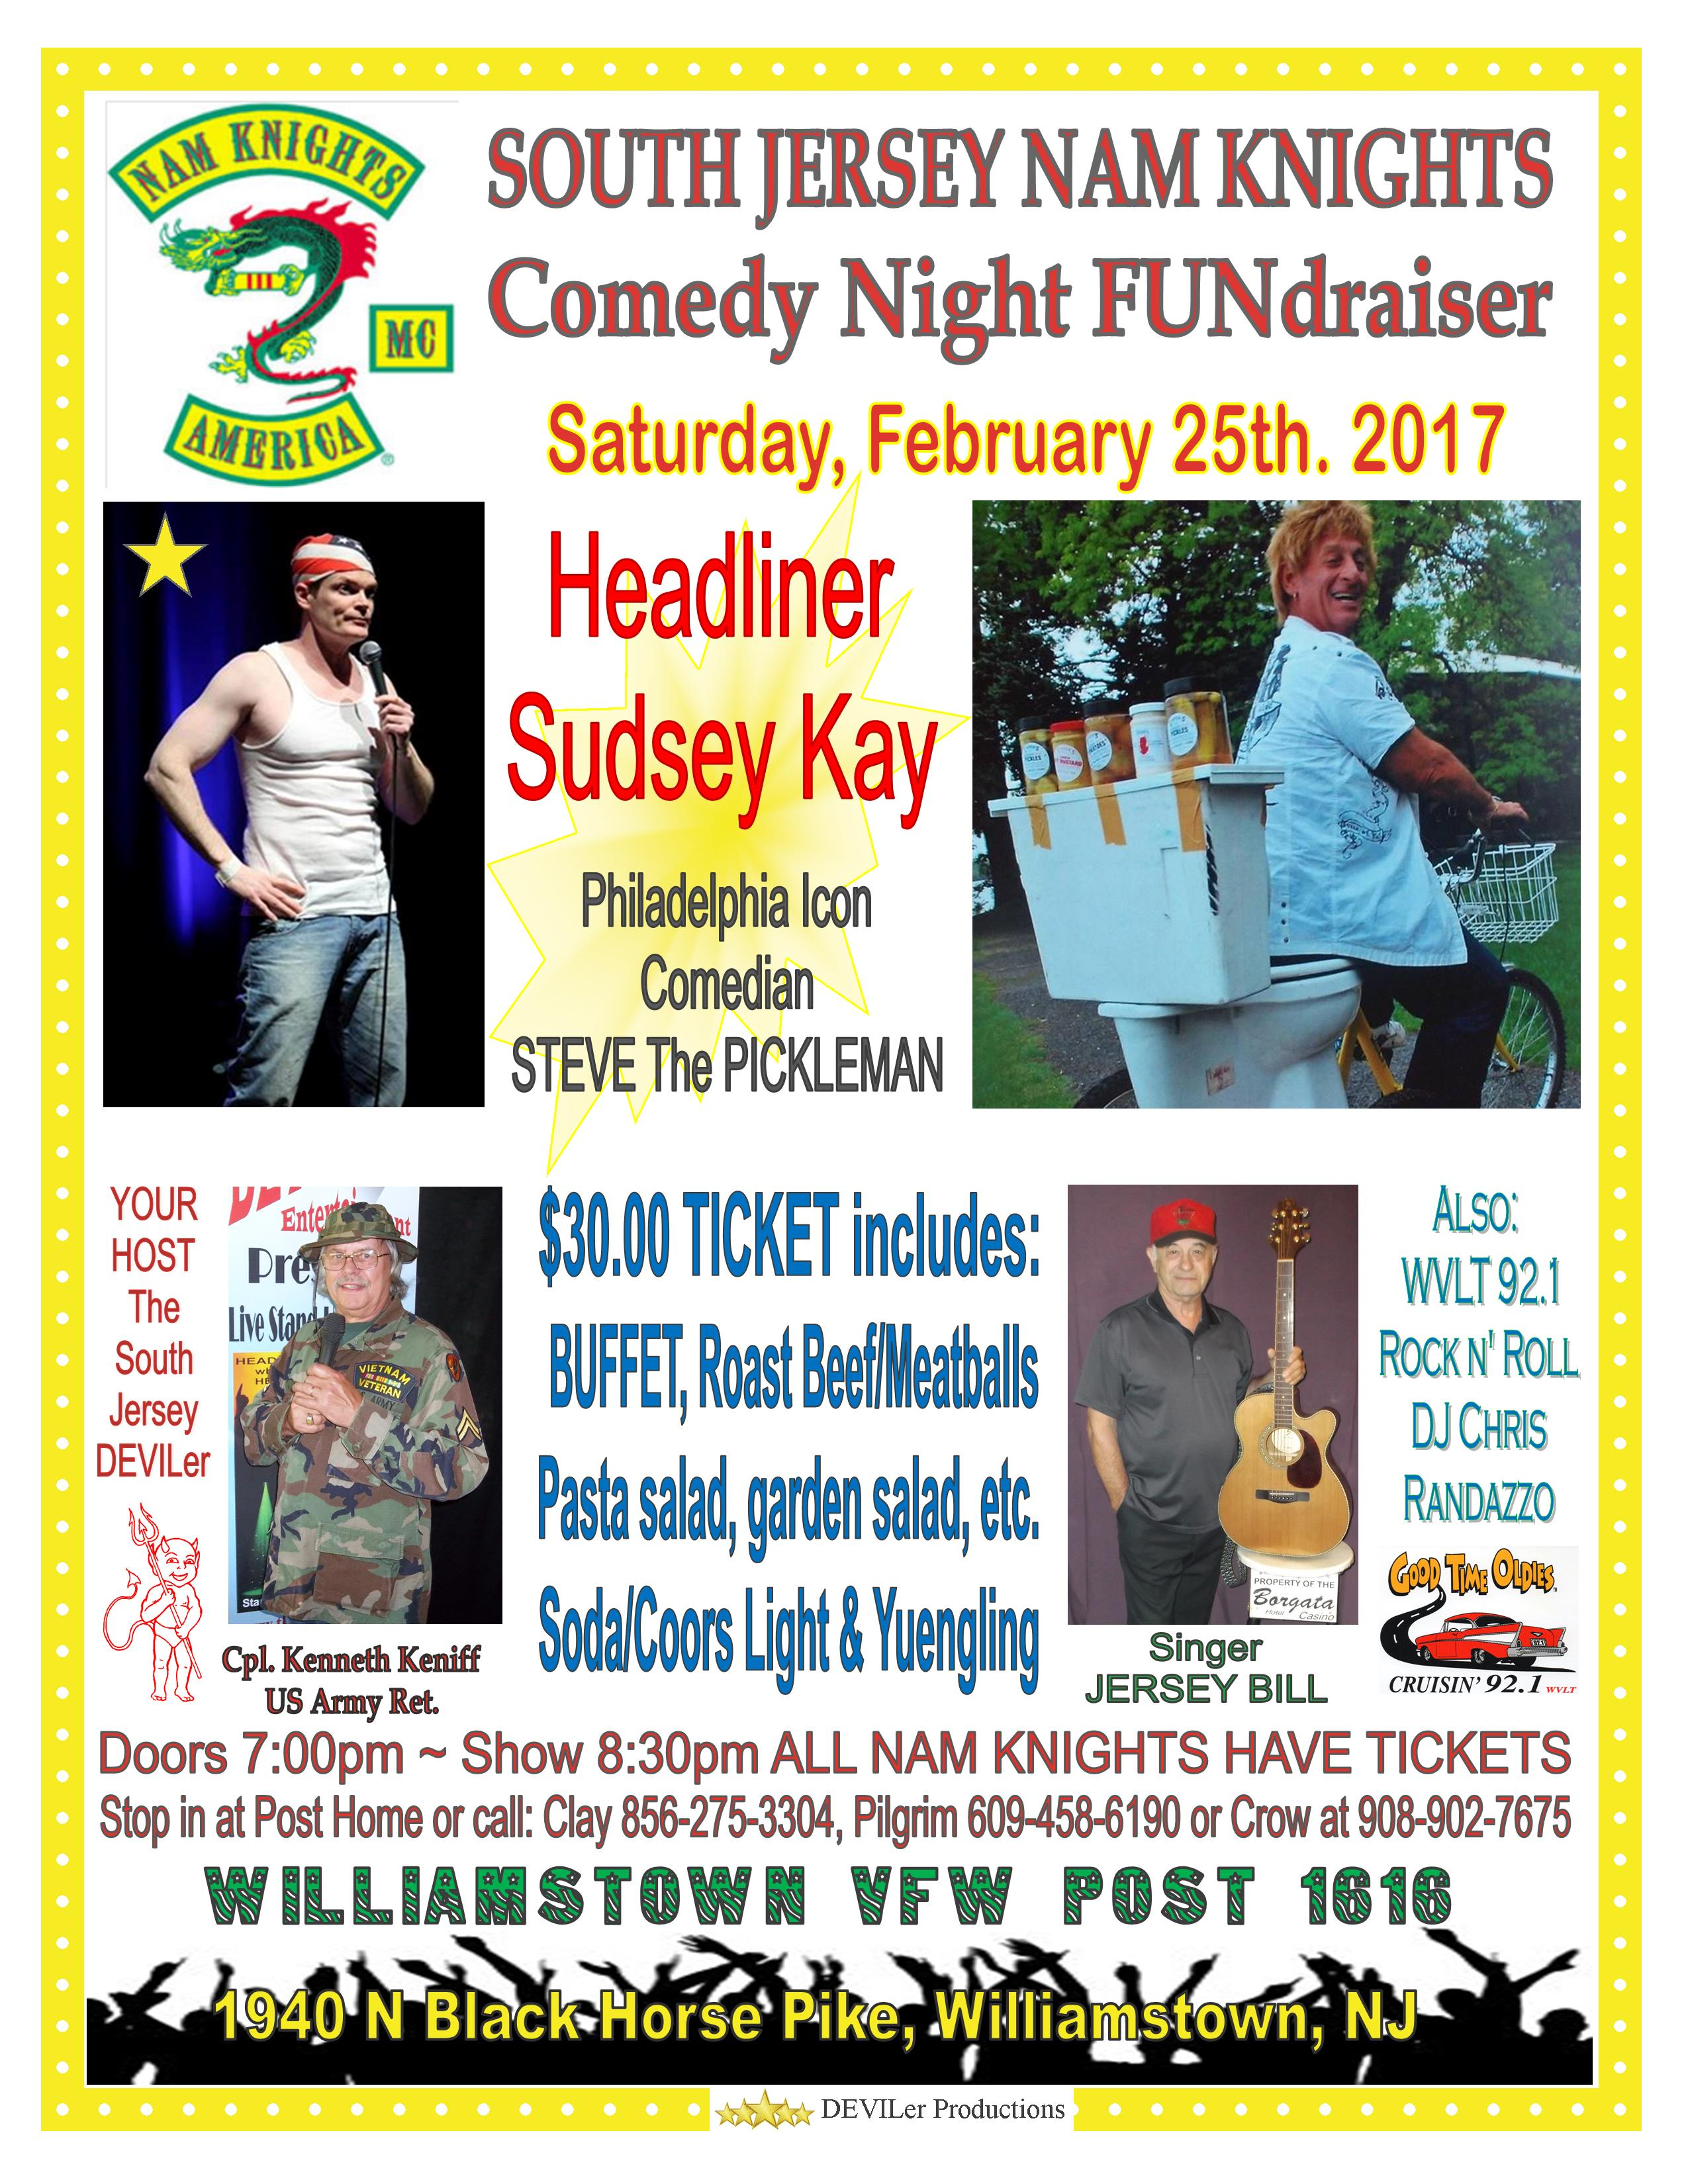 South Jersey Nam Knights Comedy Night FUNdraiser